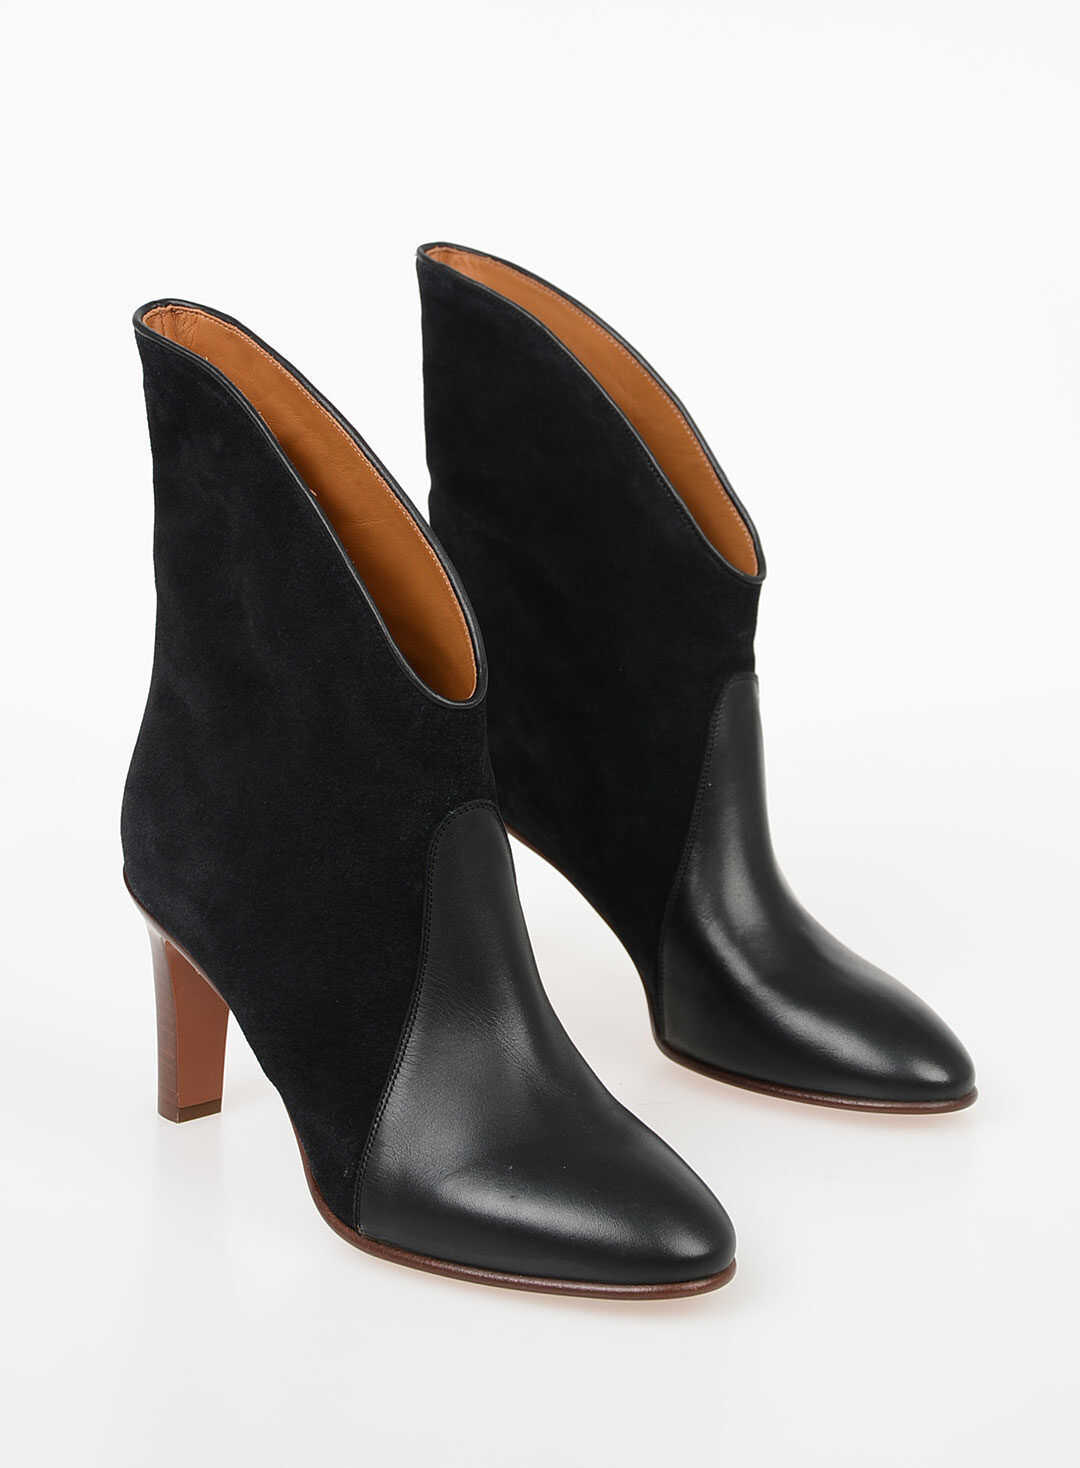 Chloe 8cm Leather Ankle Boots BLACK